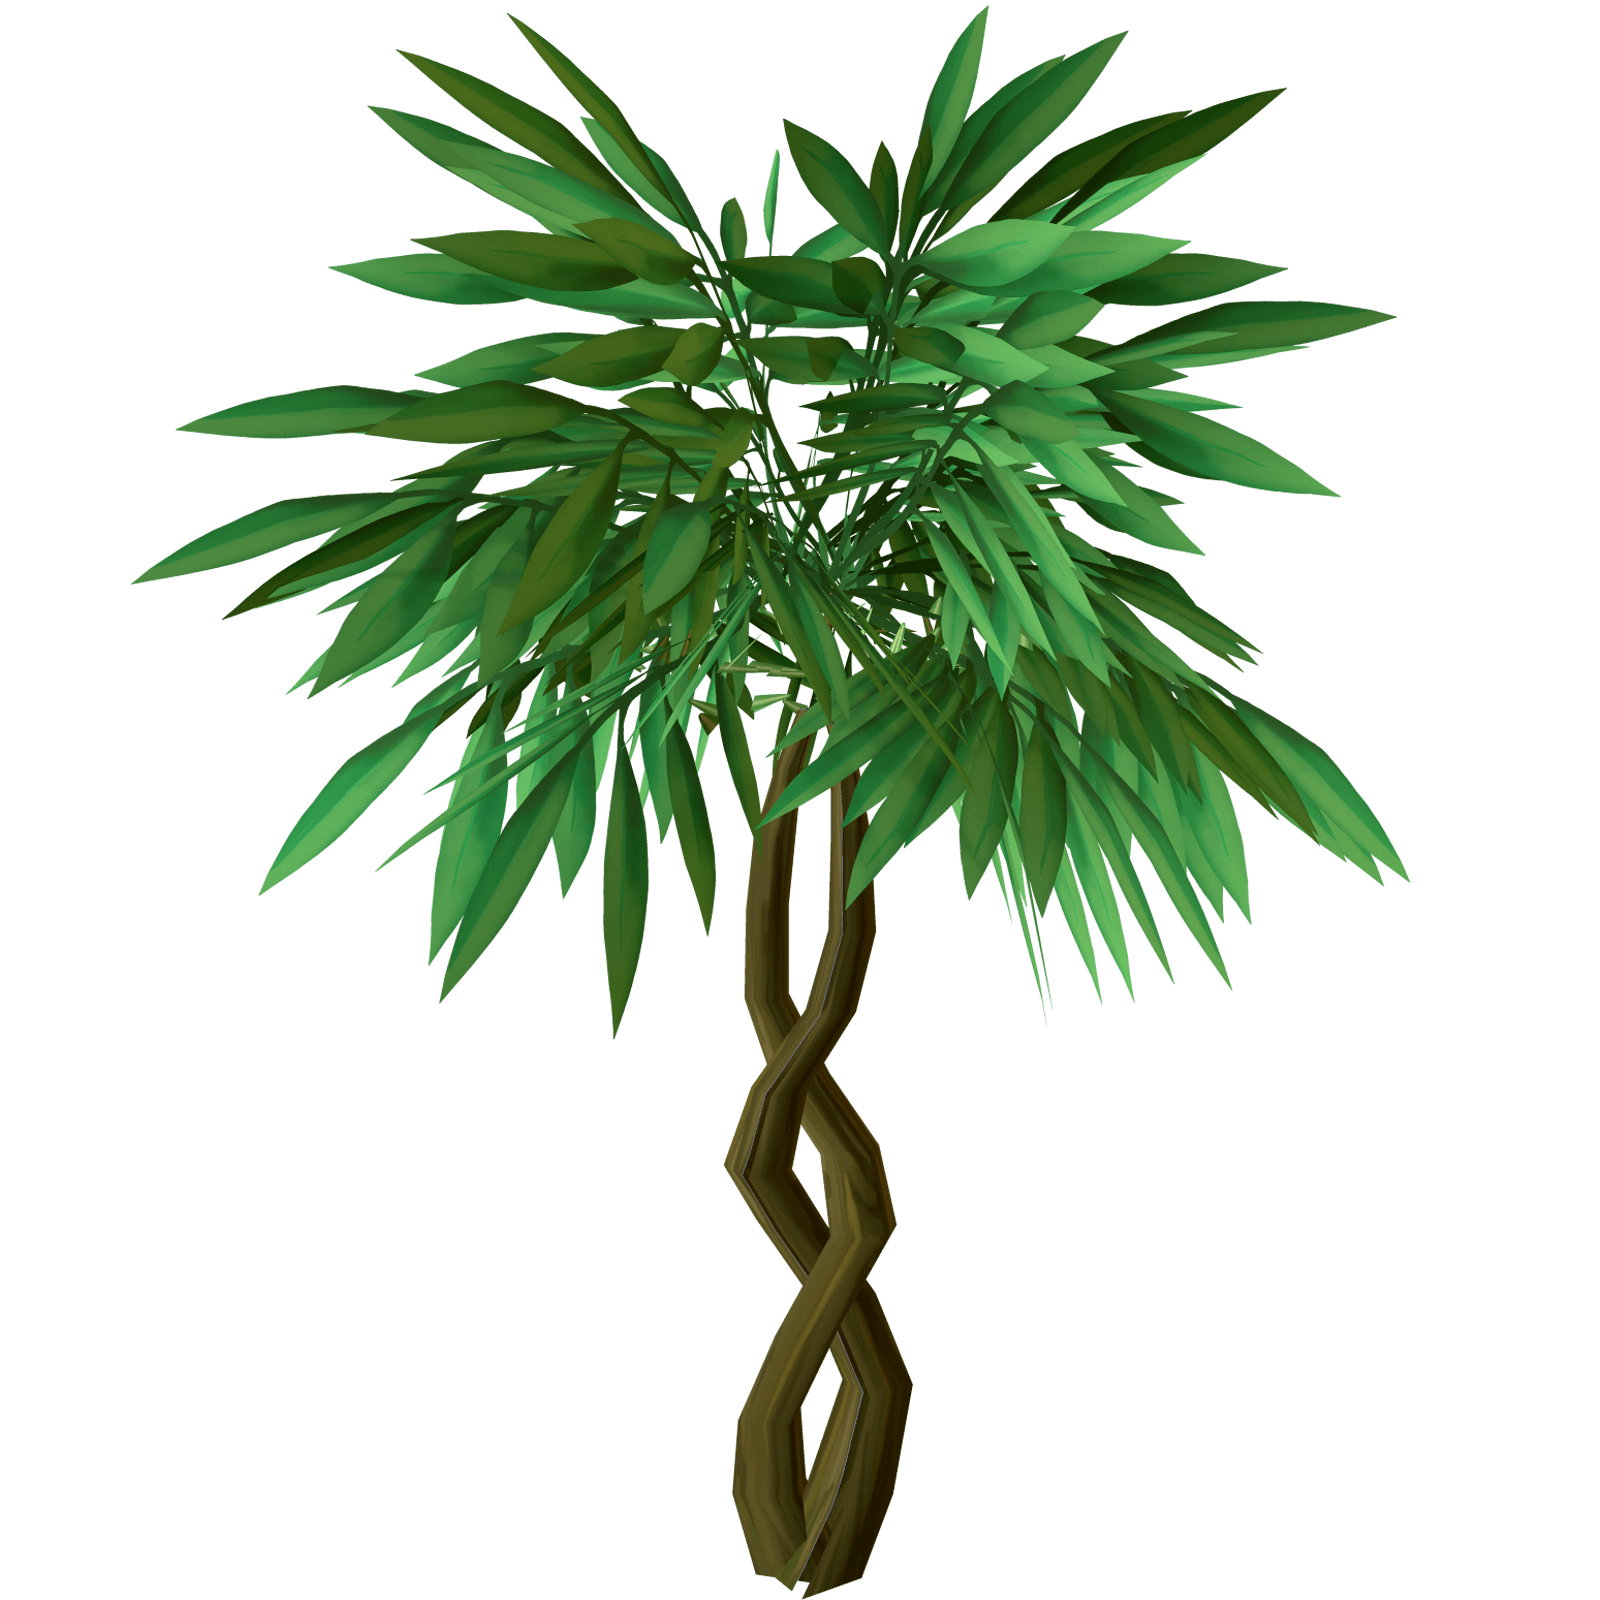 Stylized Tree - LowlyPoly